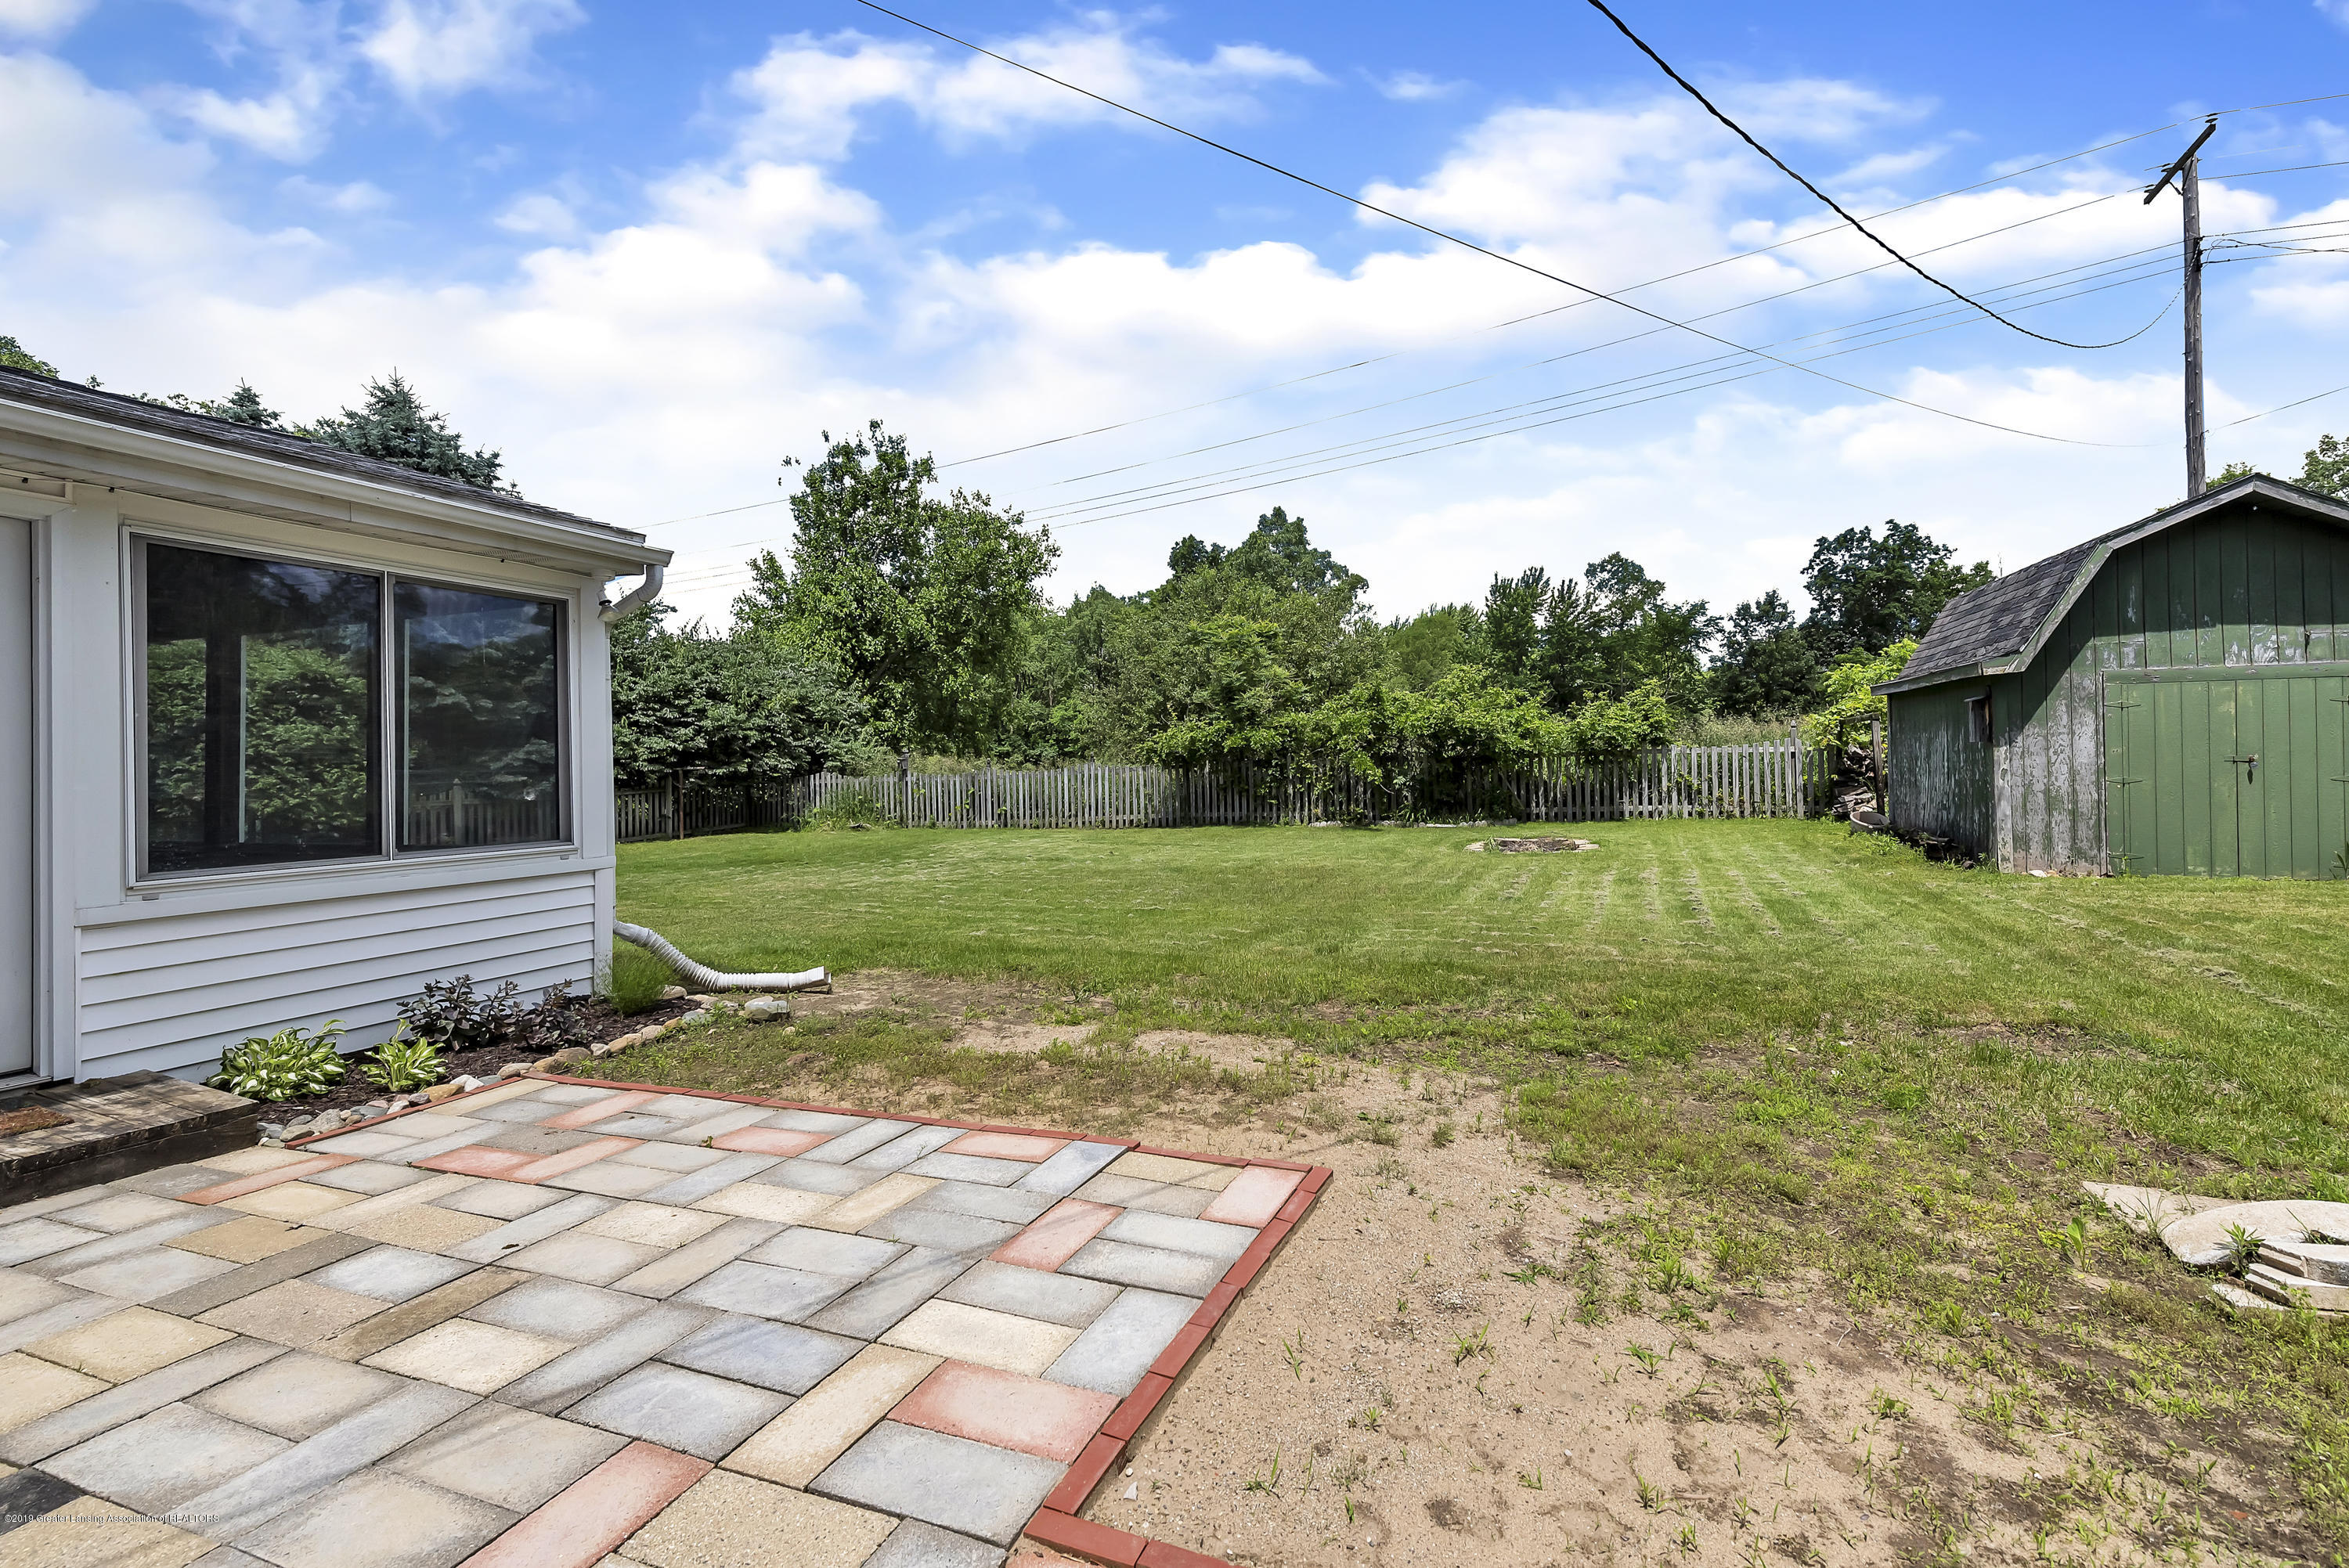 699 Sherwood Rd - 699-E-Sherwood-Rd-Williamston-windowstil - 37